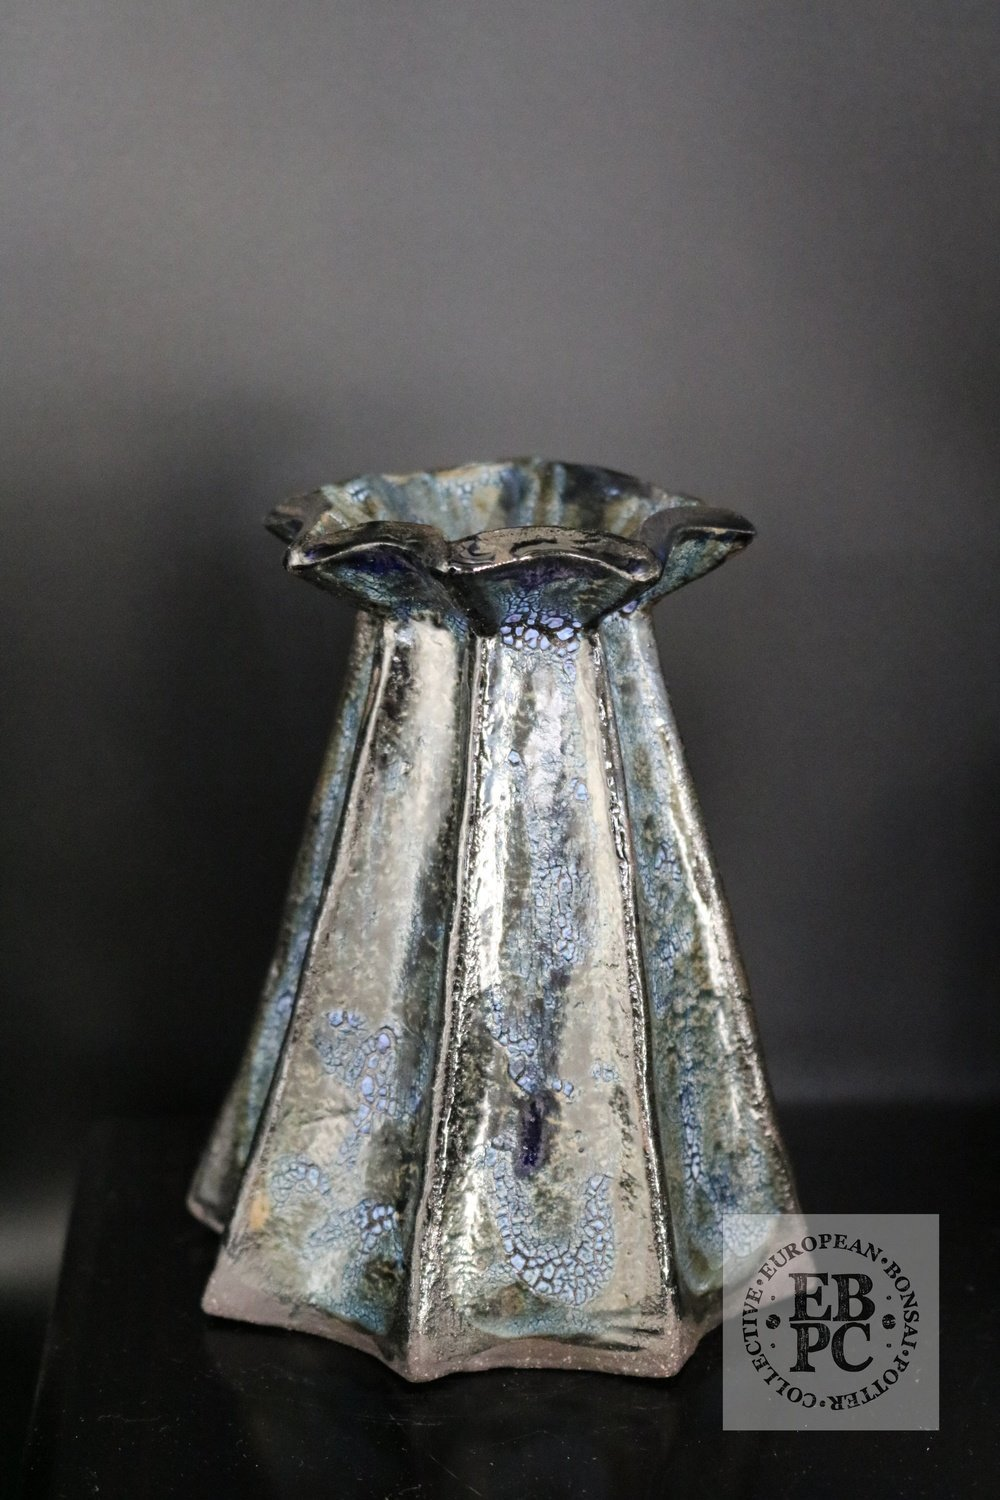 Carina Jern - 11cm; Ikebana; European; Glazed; Crawling glaze, blue, brown, metallic,